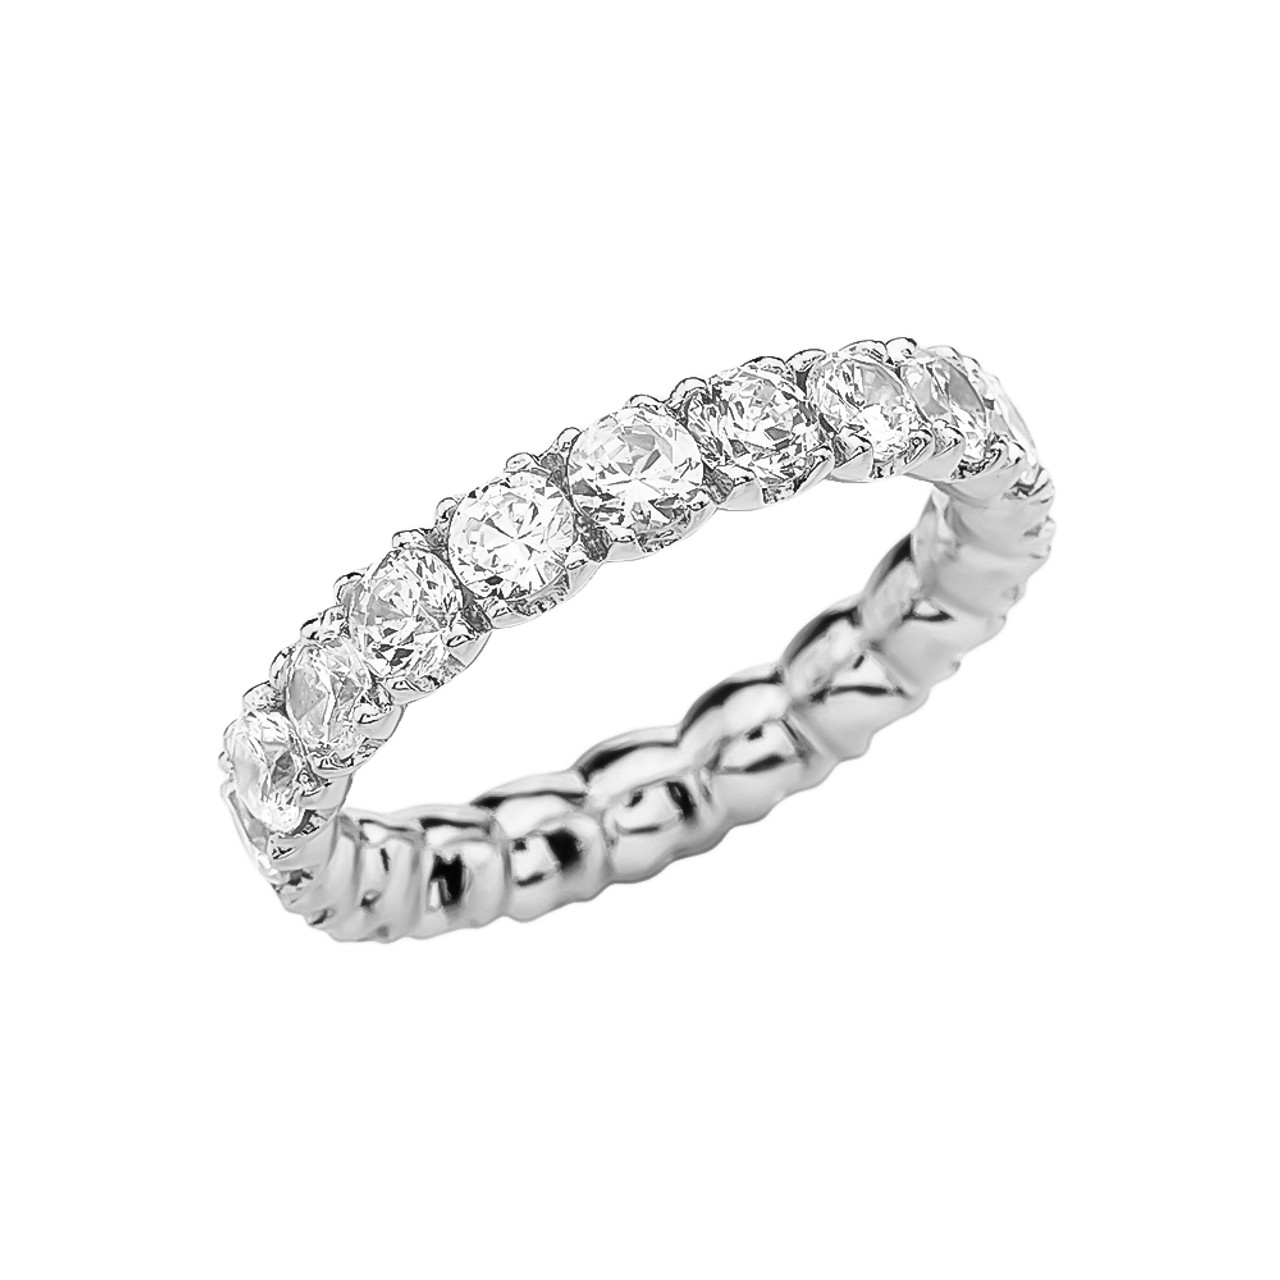 This is a graphic of White Gold 44.44-44 Carat CZ Eternity Wedding Band